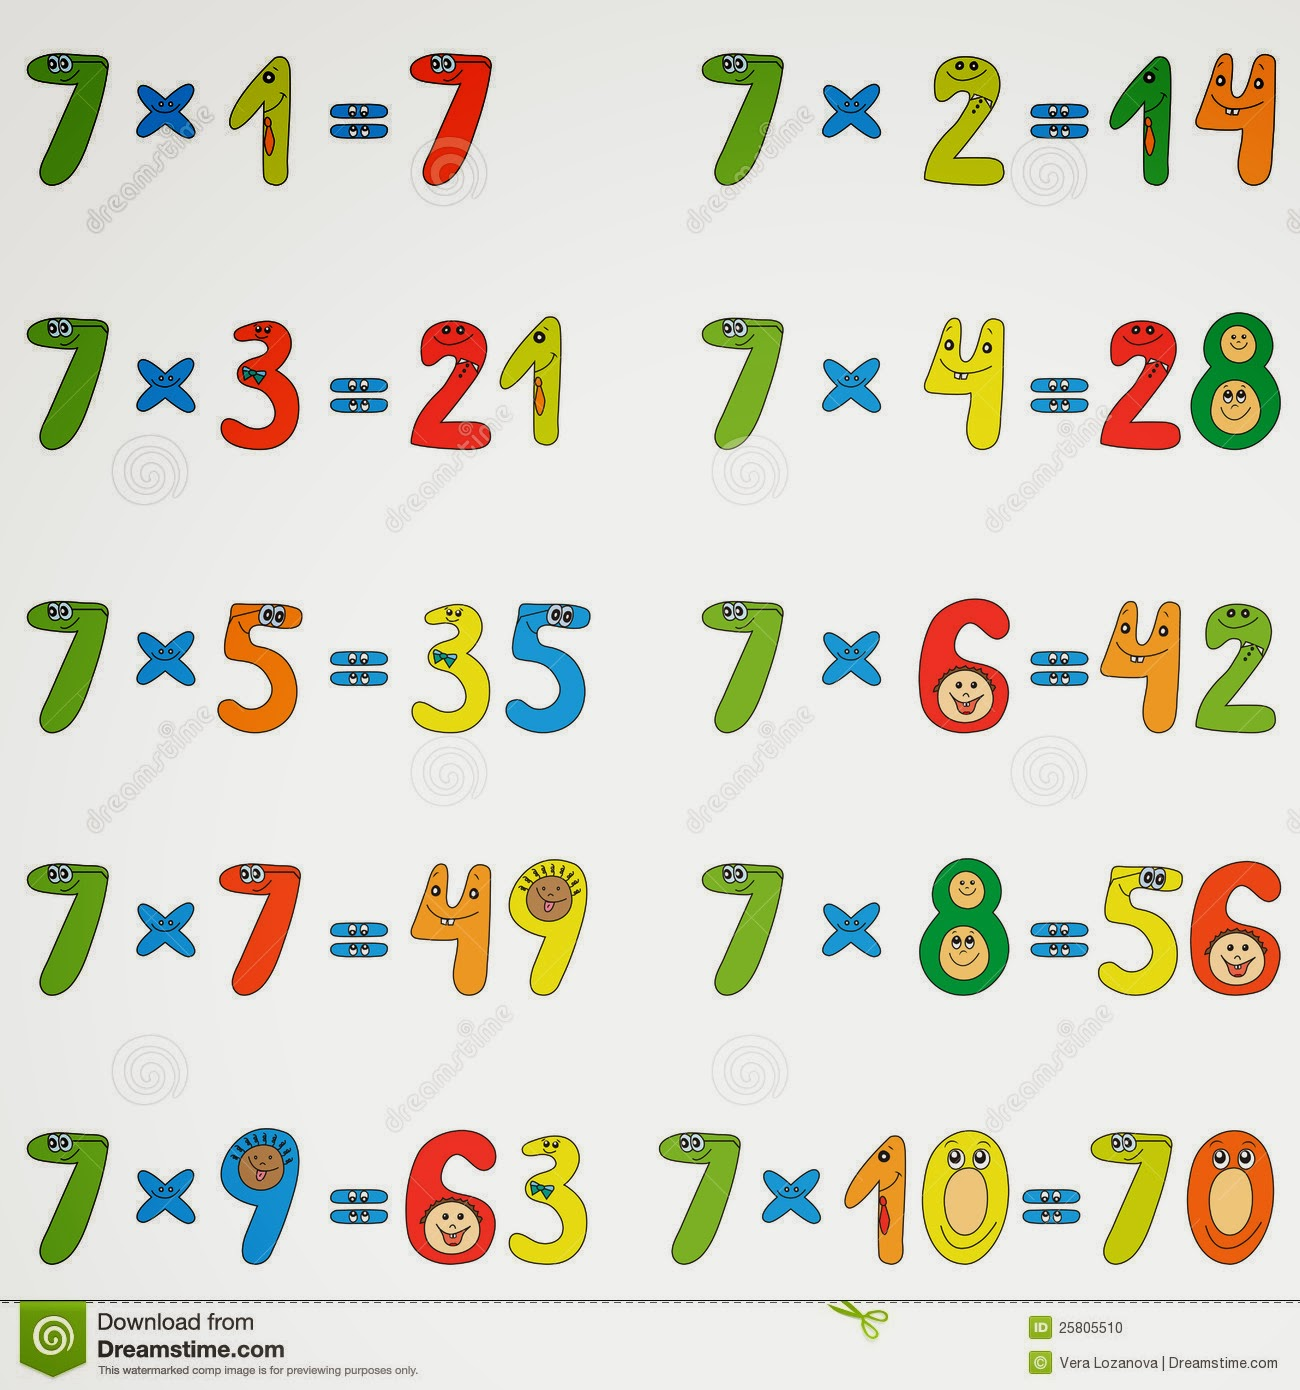 Multiplication table de multiplication 6 7 8 9 for Table de multiplication 7 et 8